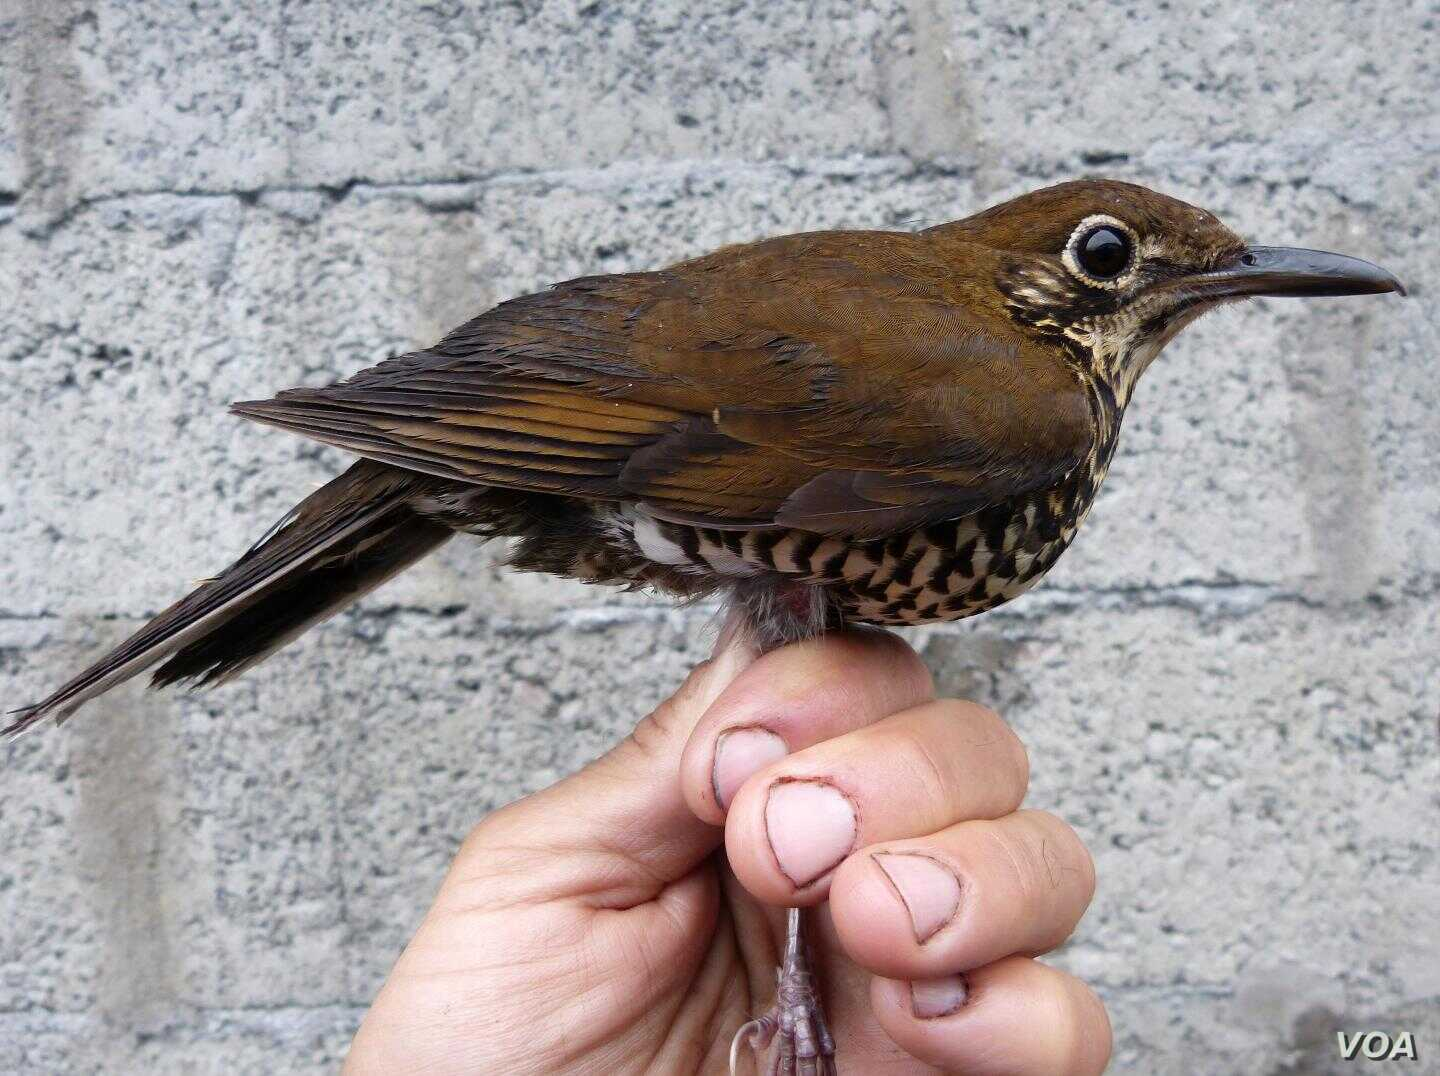 The Himalayan forest thrush was discovered in northeastern India and adjacent parts of China by a team of scientists from Sweden, China, the US, India and Russia. CREDIT